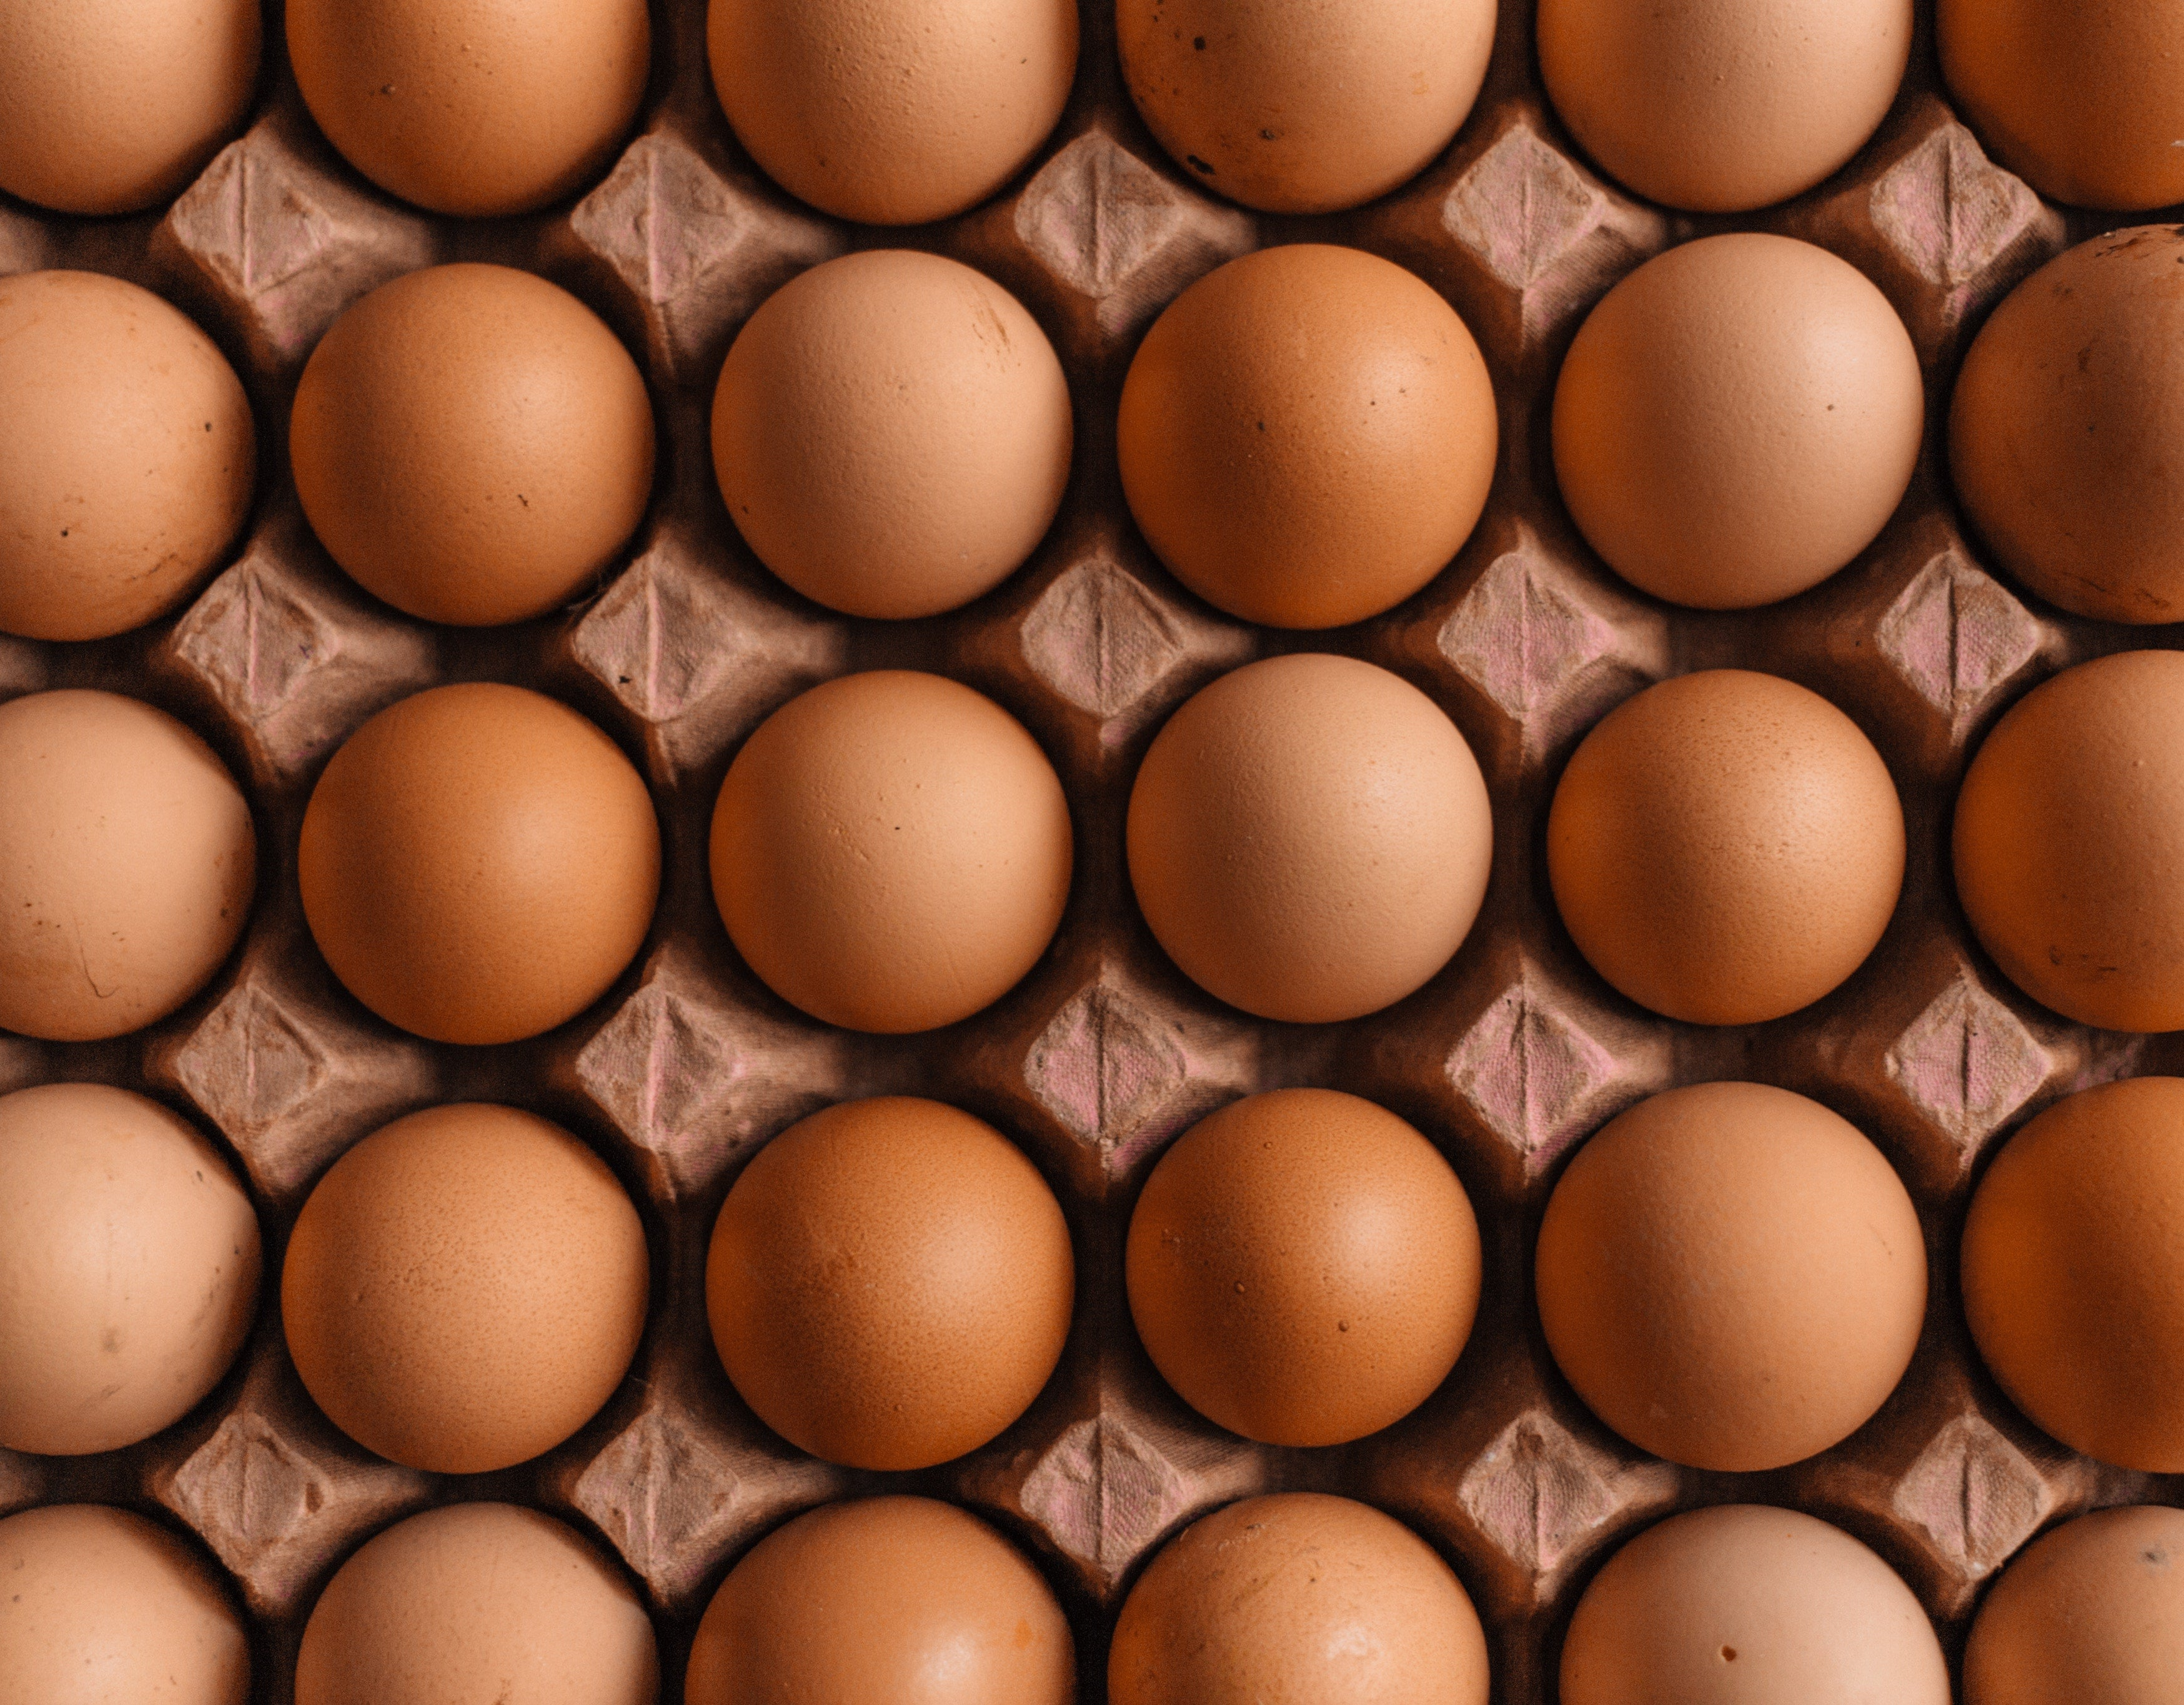 Four rows of brown eggs fill the frame